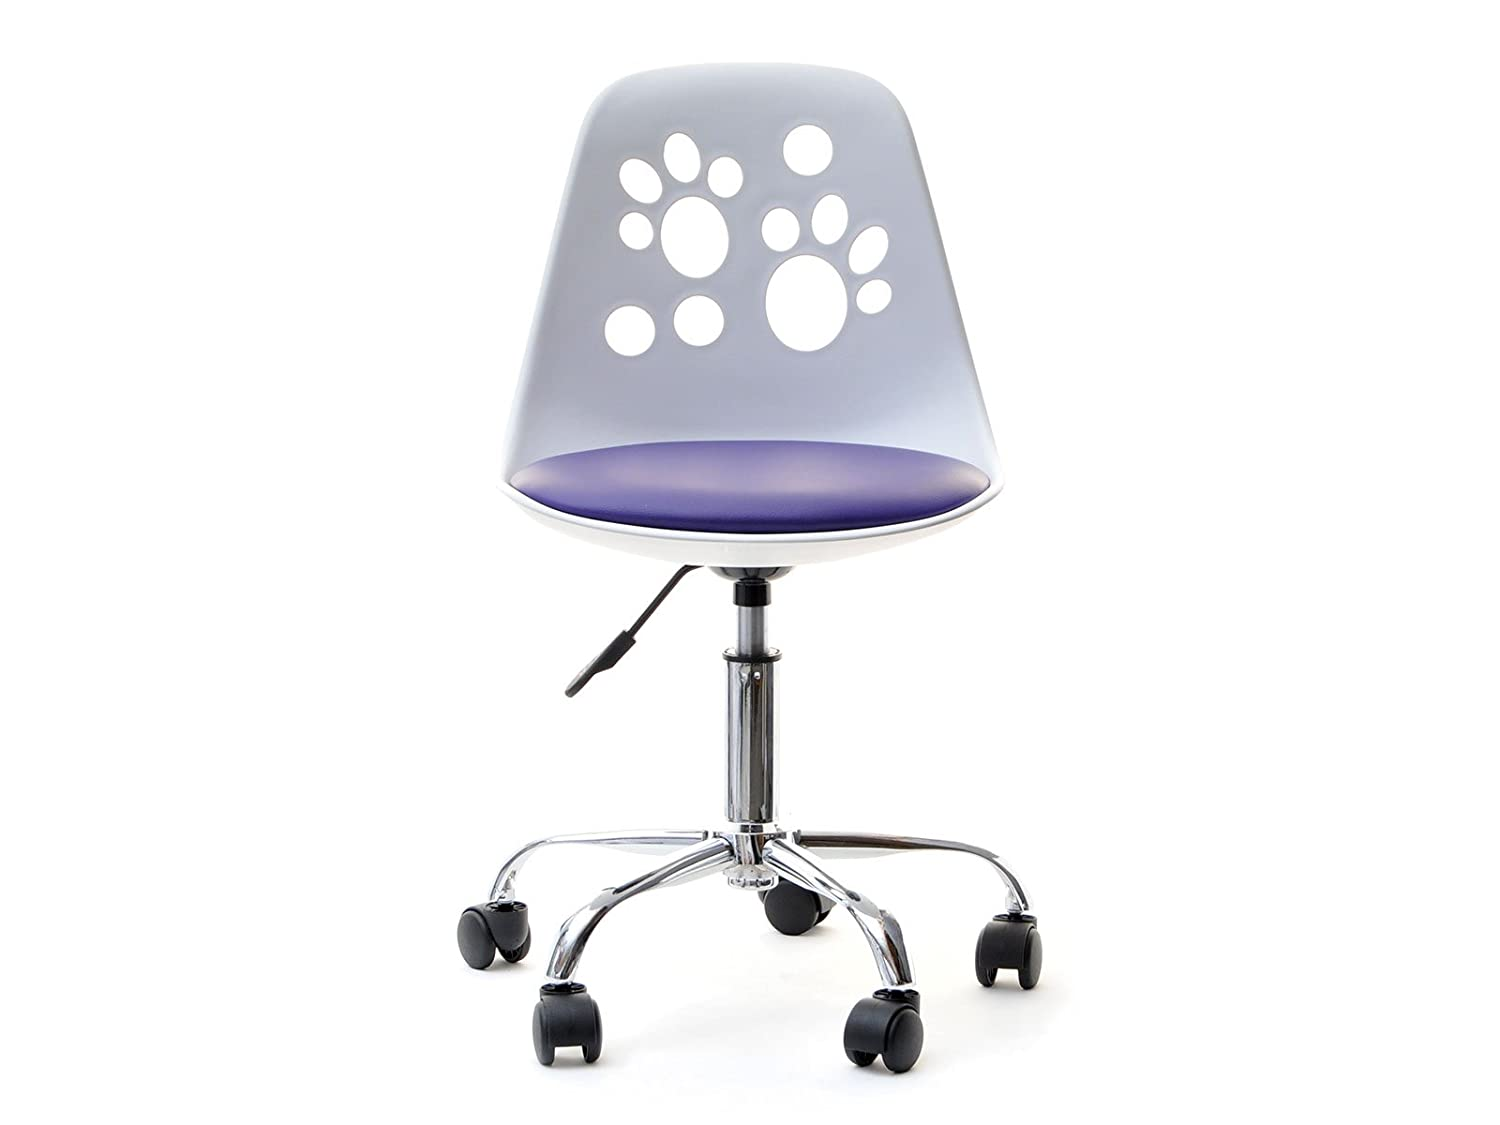 Superb Foot Modern And Funky Looking Adjustable Swivel Chair For Childrens Desk With Multiple Colour Combinations White Violet Creativecarmelina Interior Chair Design Creativecarmelinacom